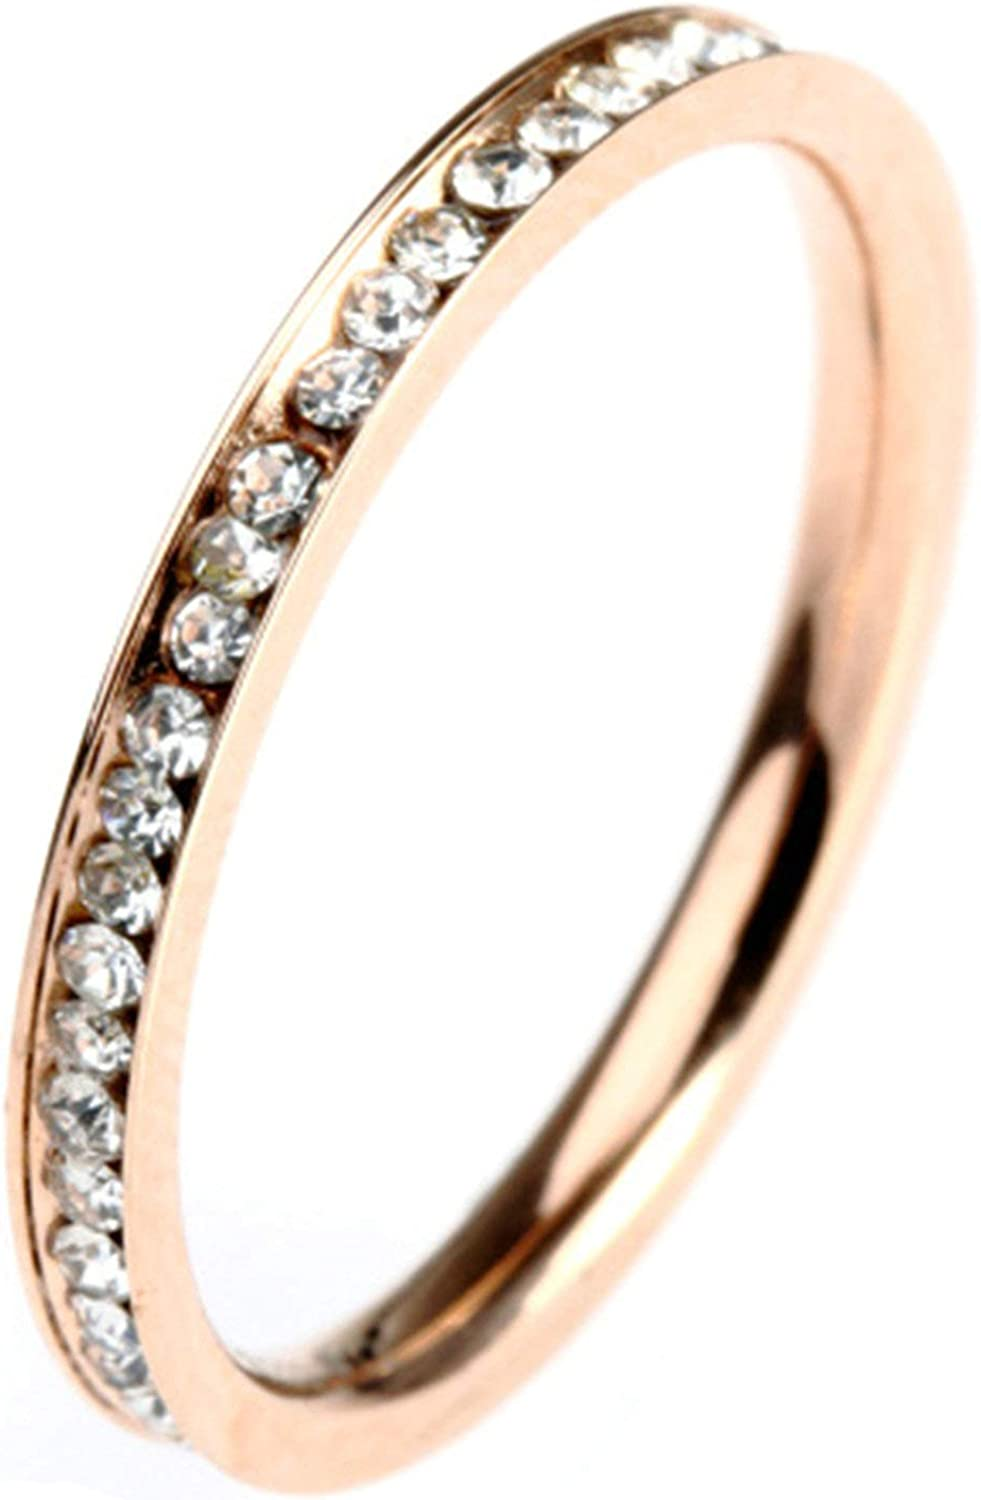 AMDXD Stainless Steel Ring Band Rose Gold Ring Channel Setting Cubic Zirconia Men Biker Ring Vintage